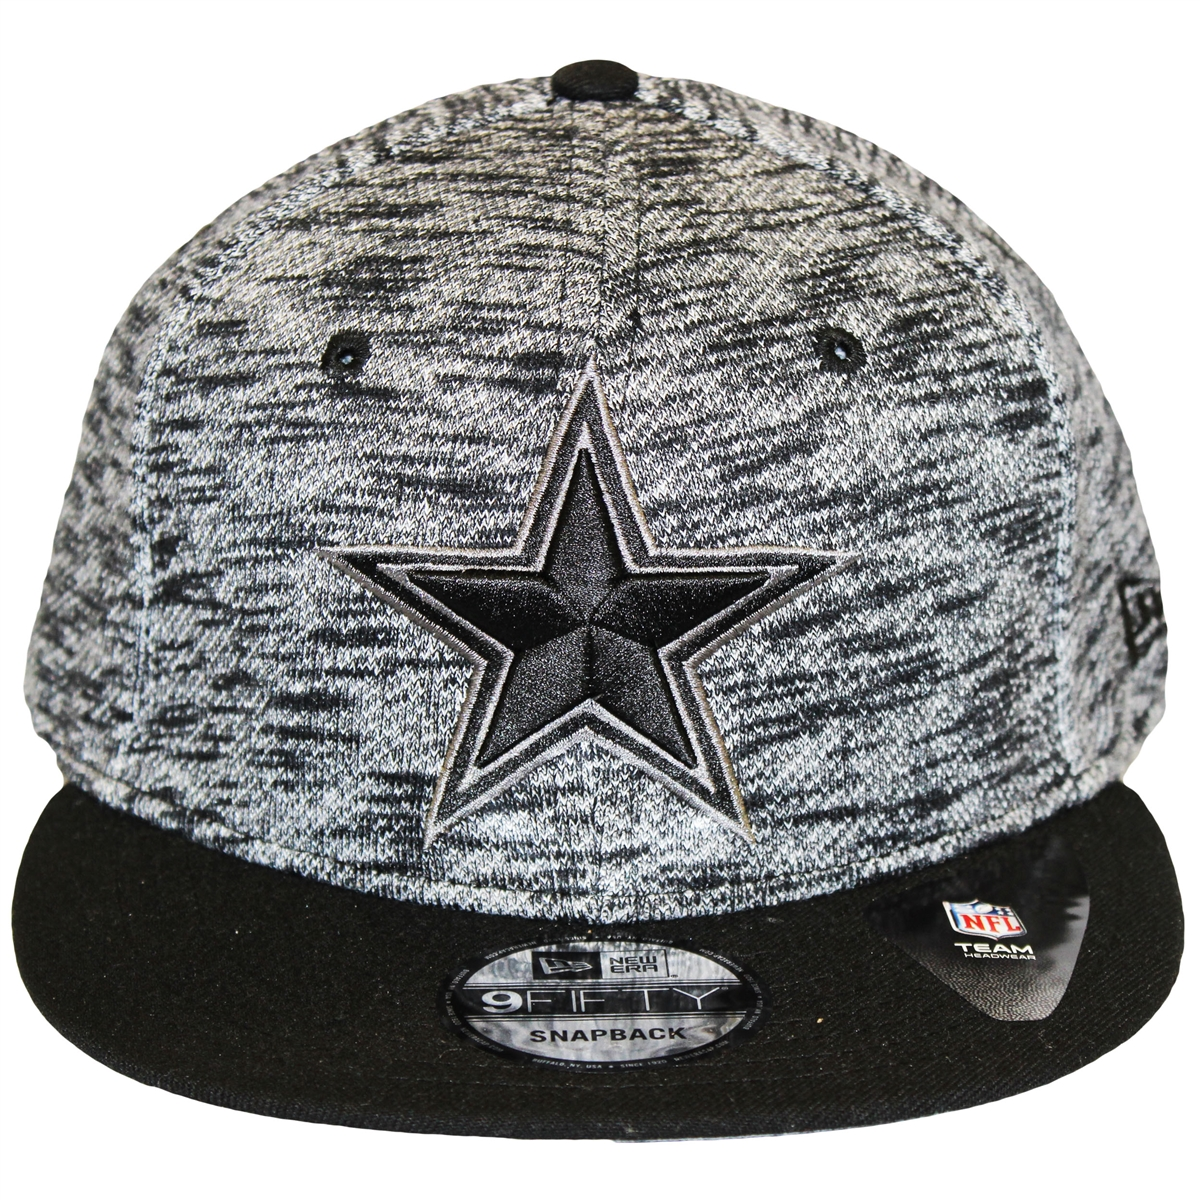 0f737d5105d ... ireland ne 9fifty terry fresh dallas cowboys gray black snapback hat  nfl 3 d raised star